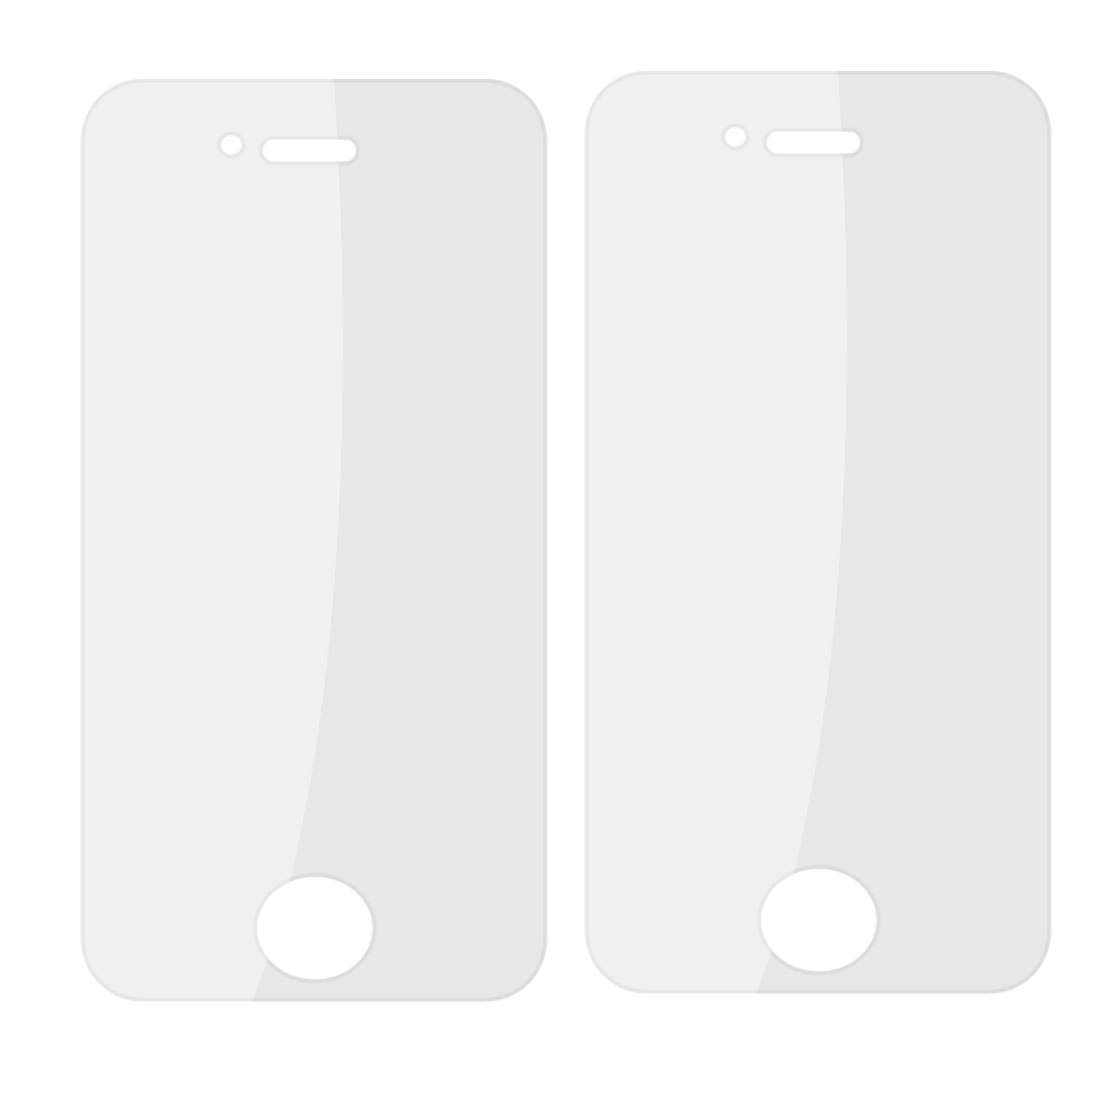 2 Pcs Protective Clear Plastic Screen Guard Film for iPhone 4 4G